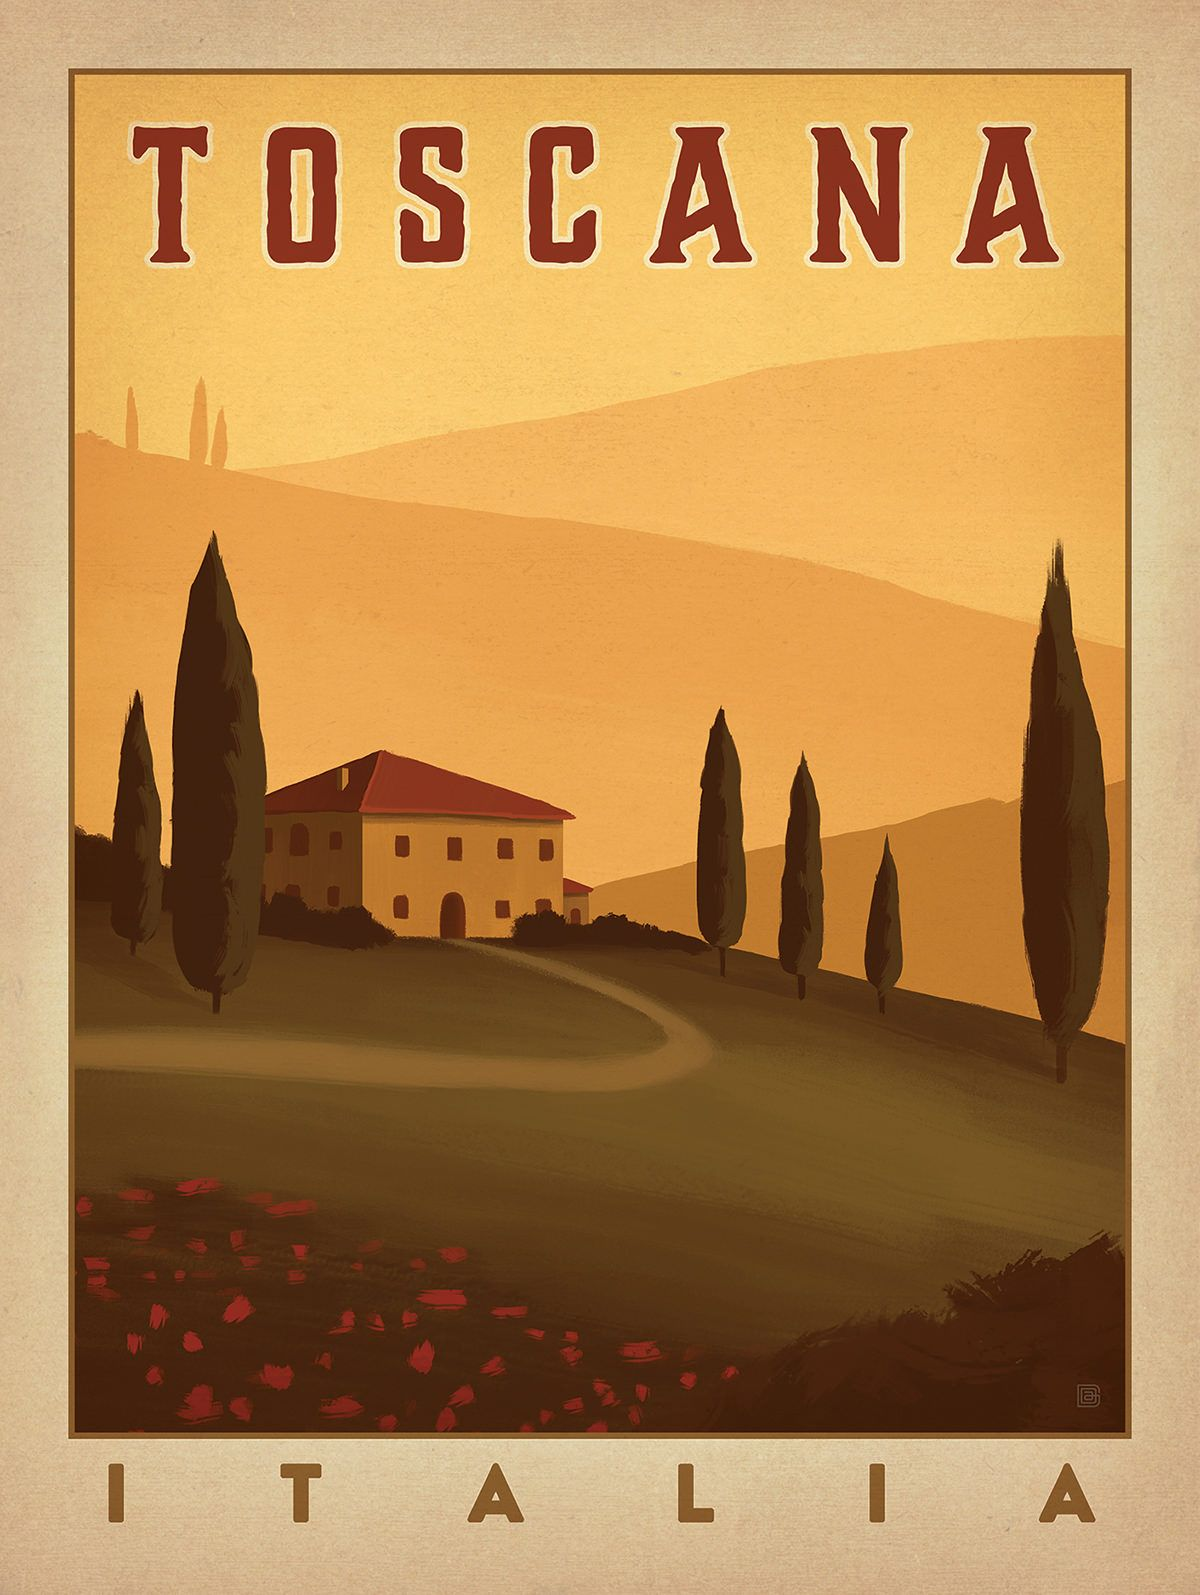 Www Andersondesigngroupstore Com Toscana Italy Retro Travel Poster Vintage Travel Posters Vintage Italian Posters